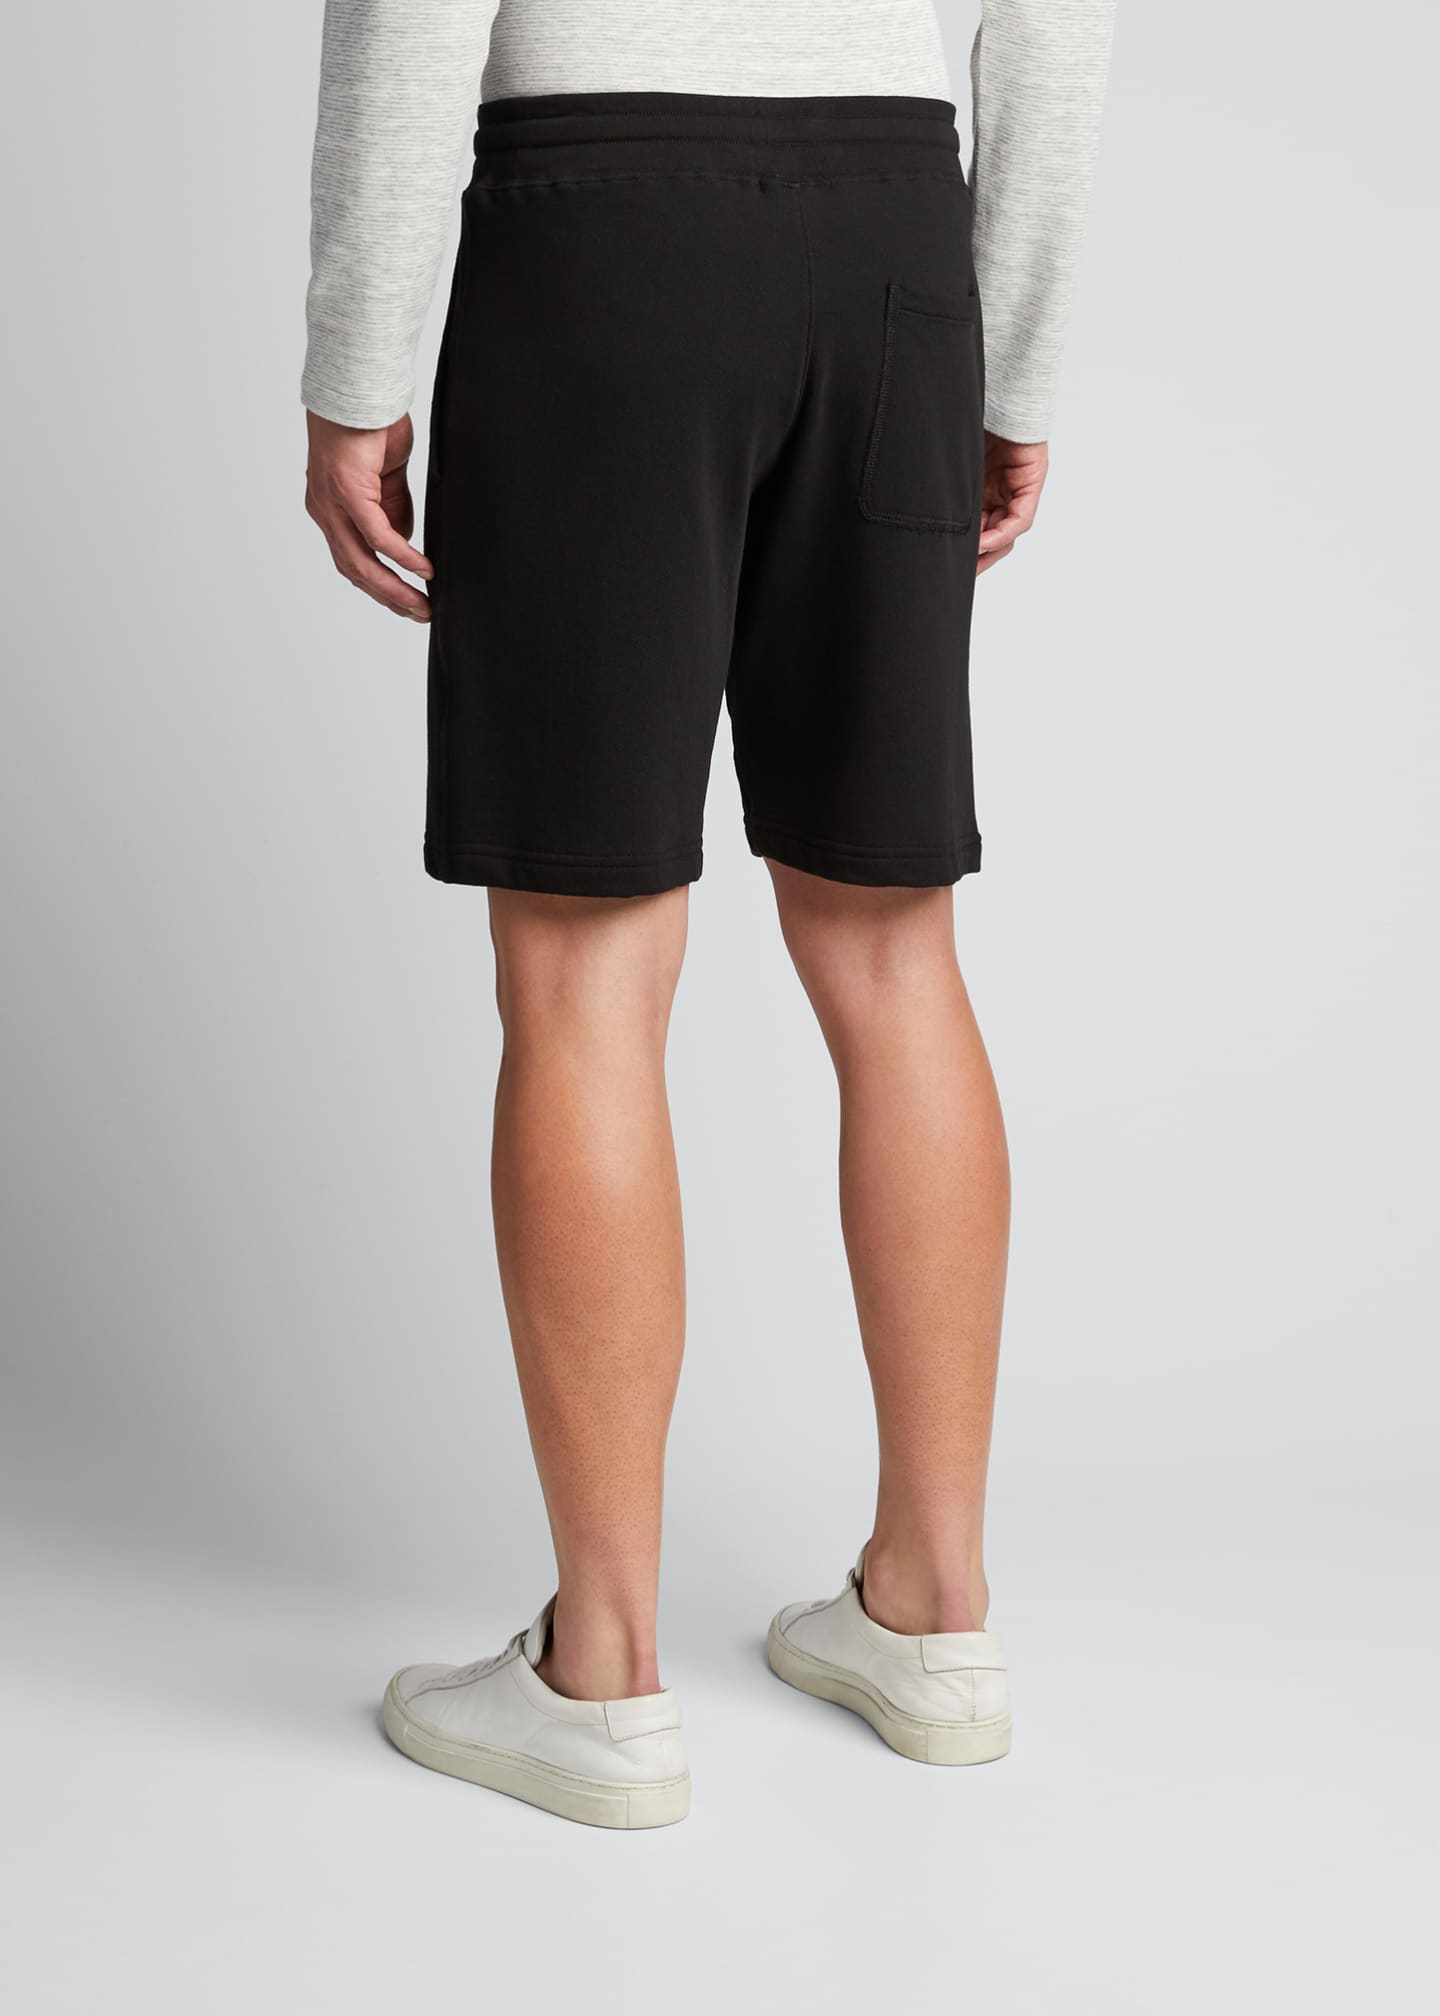 Image 2 of 5: Men's Garment-Dyed Drawstring Shorts